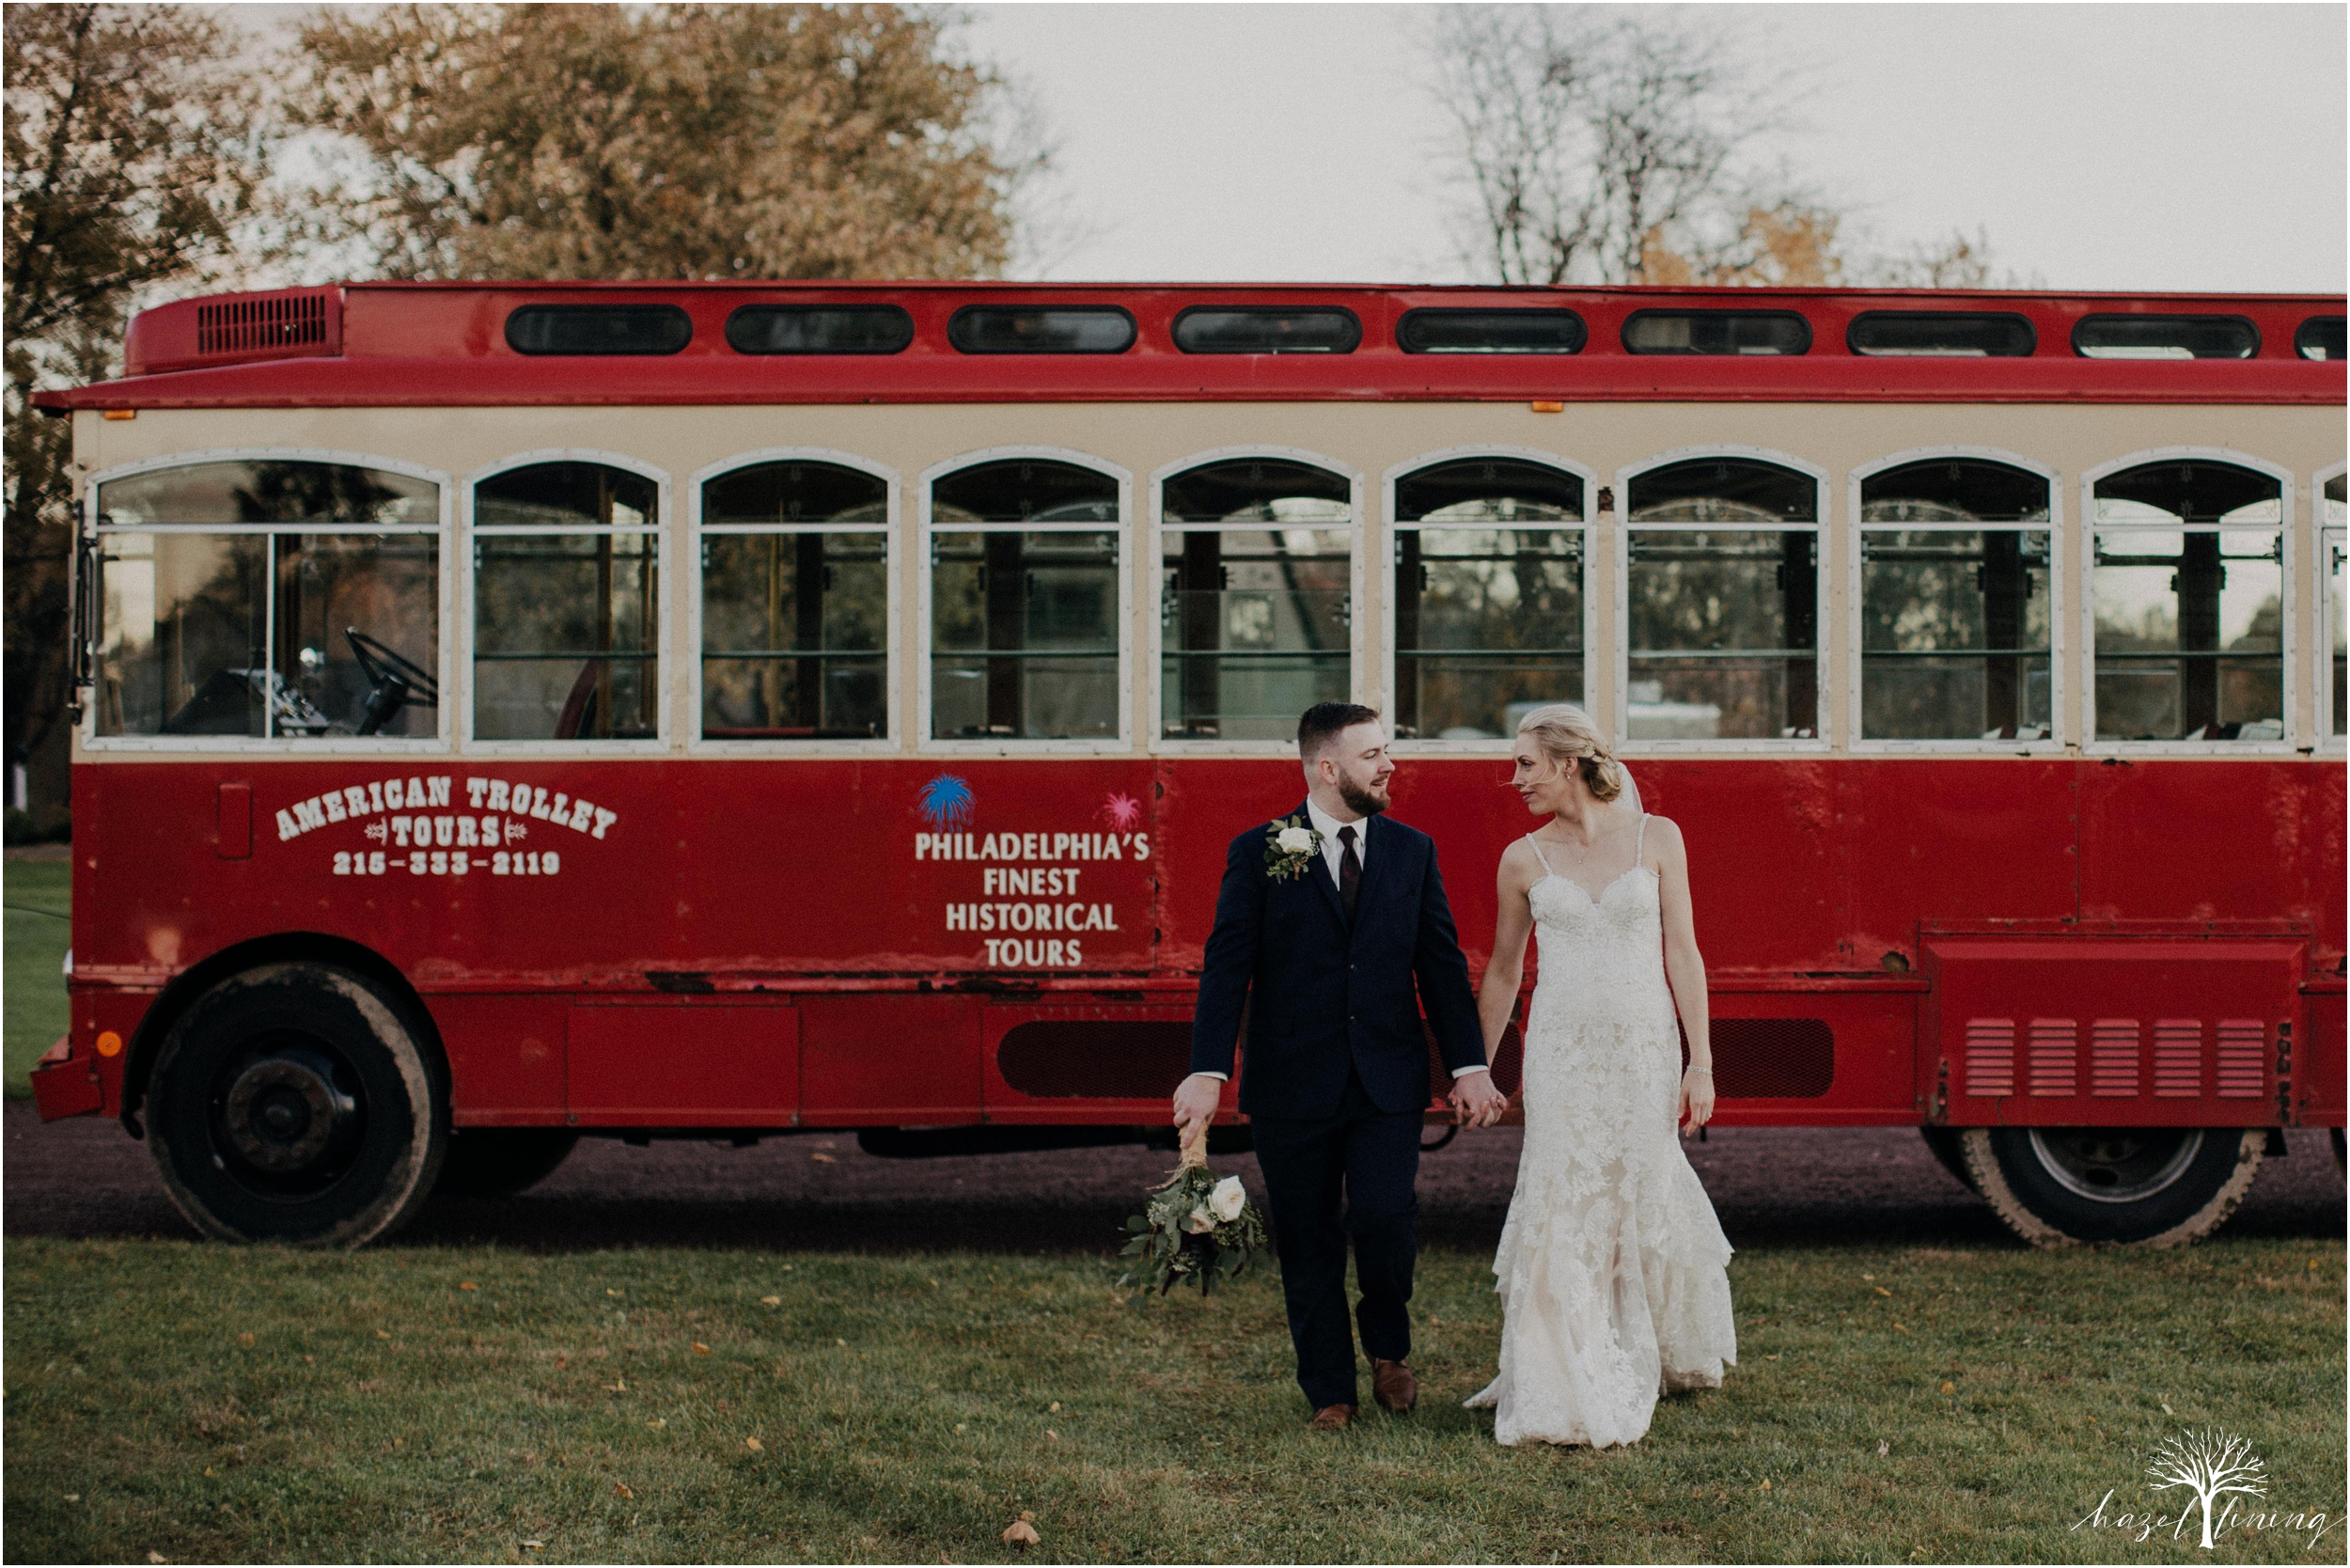 briana-krans-greg-johnston-farm-bakery-and-events-fall-wedding_0134.jpg